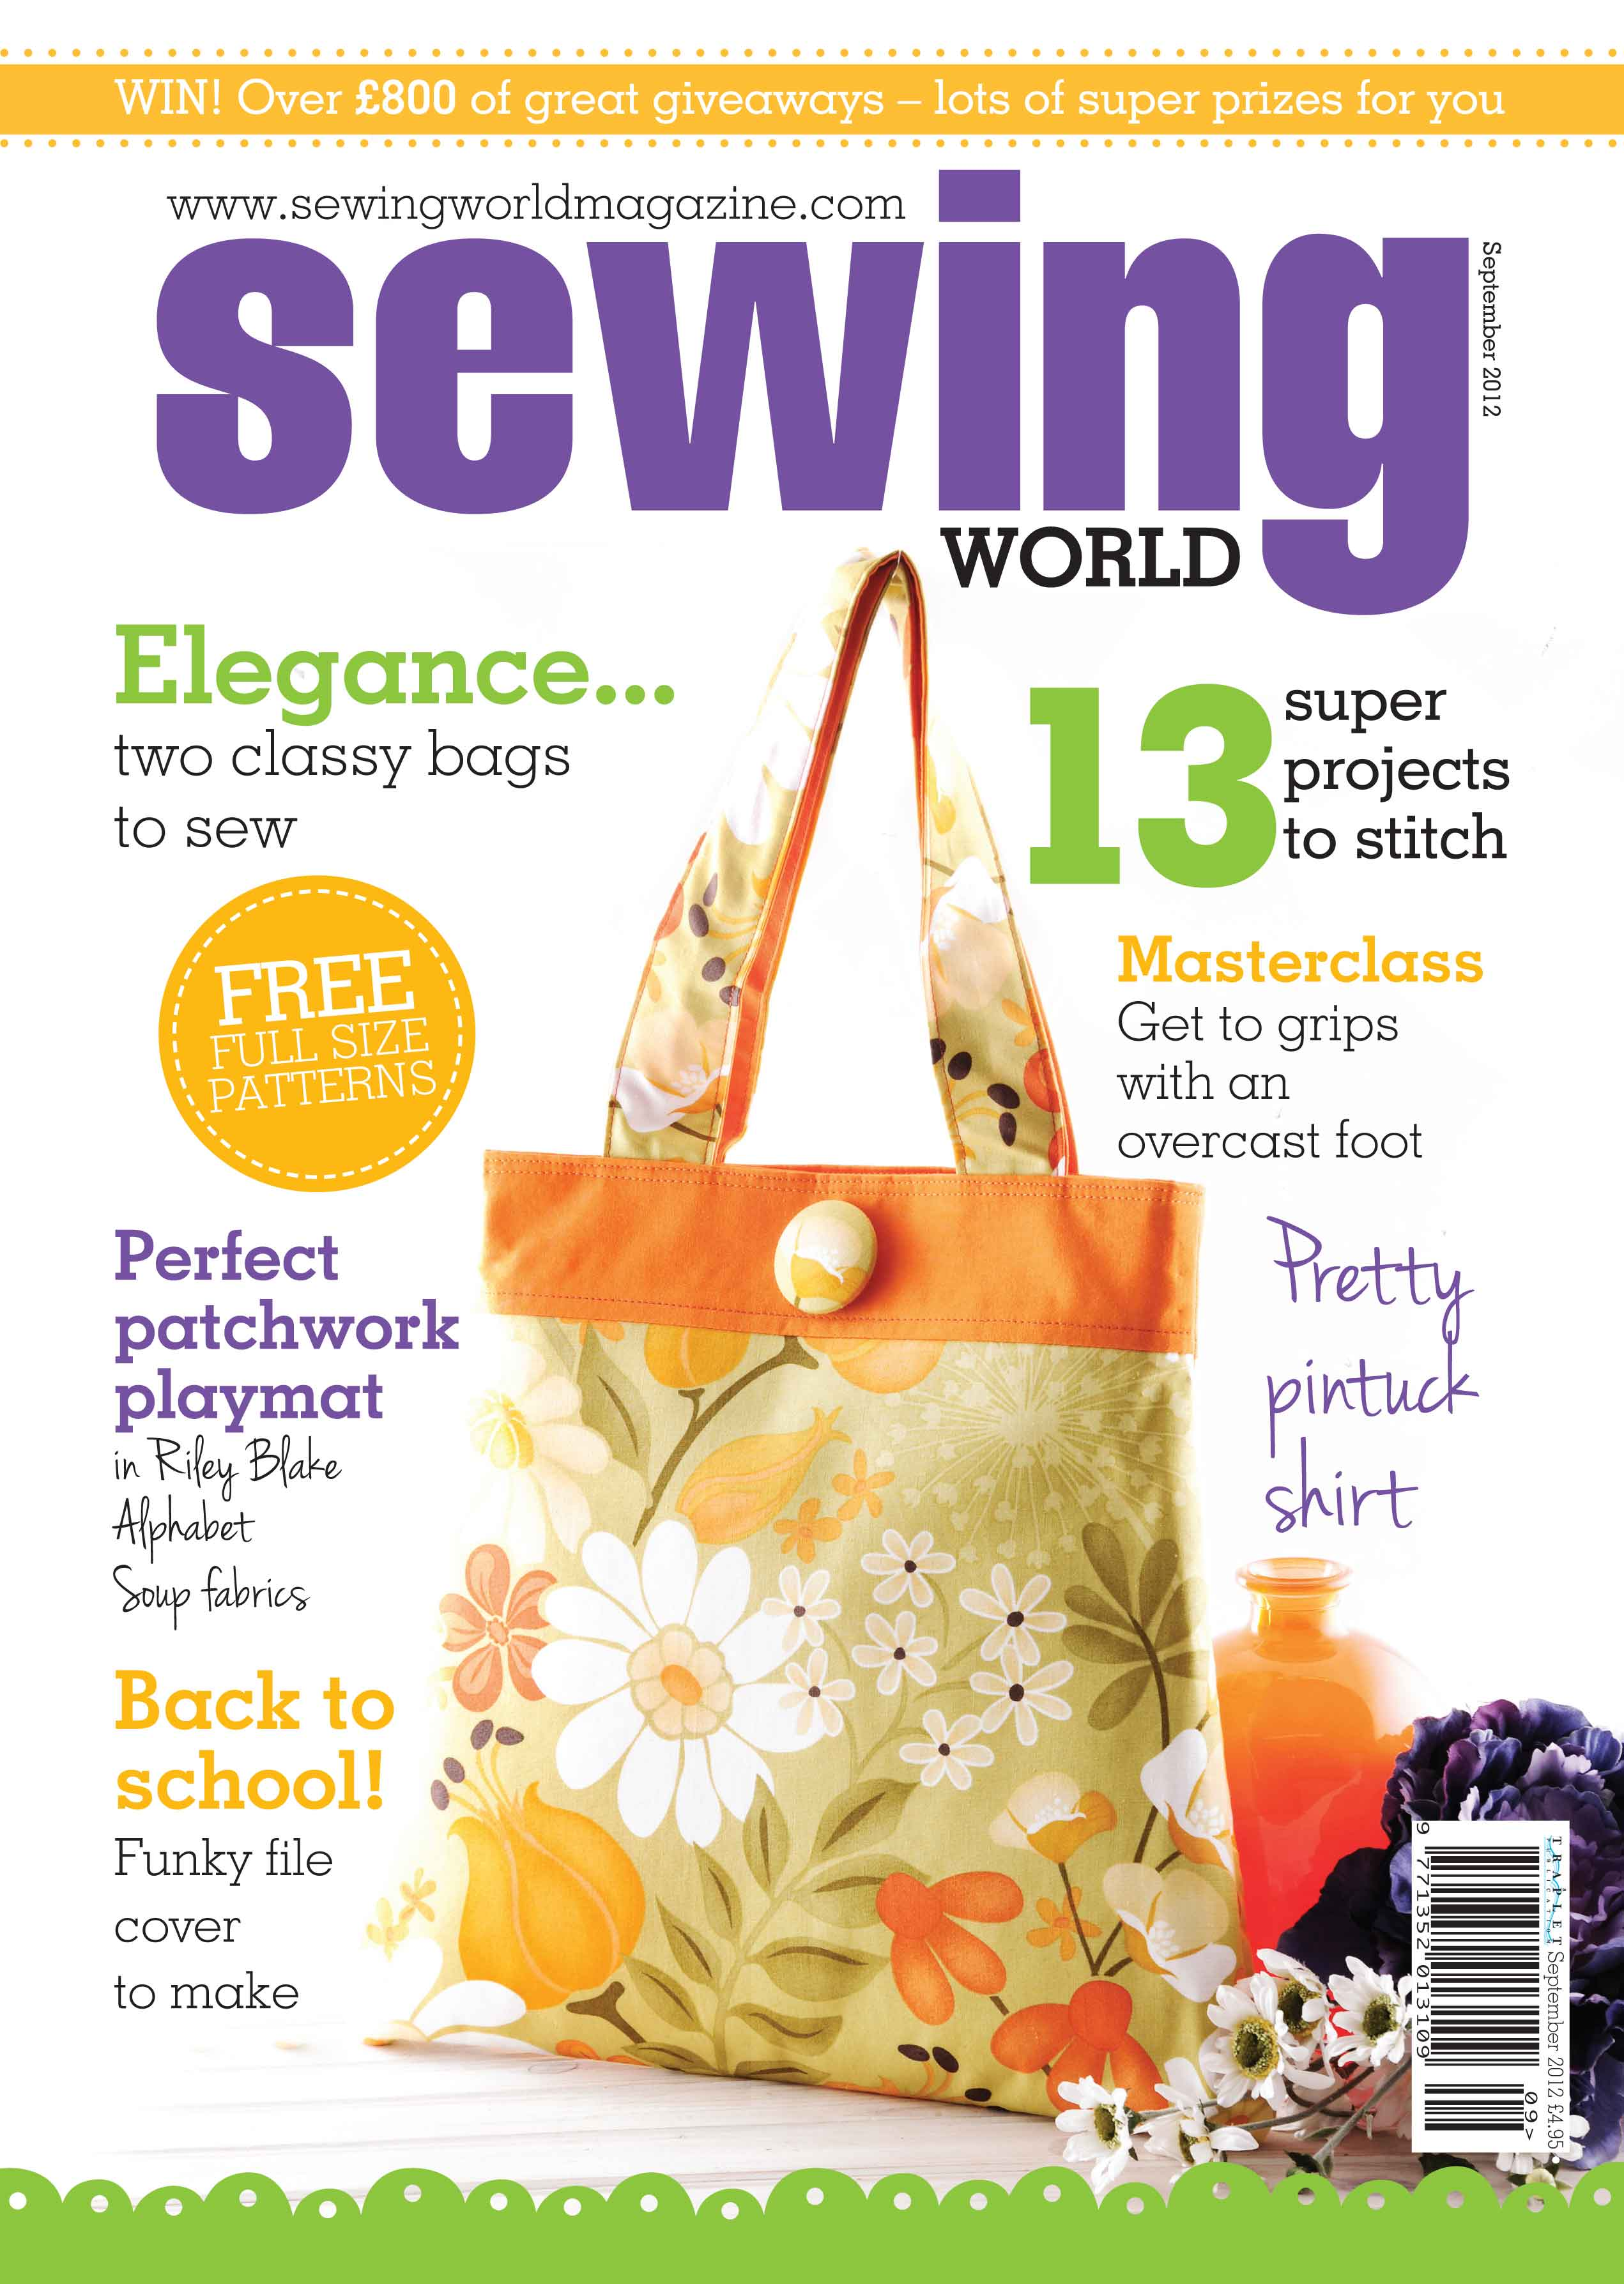 Sewing world magazine feature susieddesigns space to sew craft sewing world sept 2012 issue jeuxipadfo Choice Image